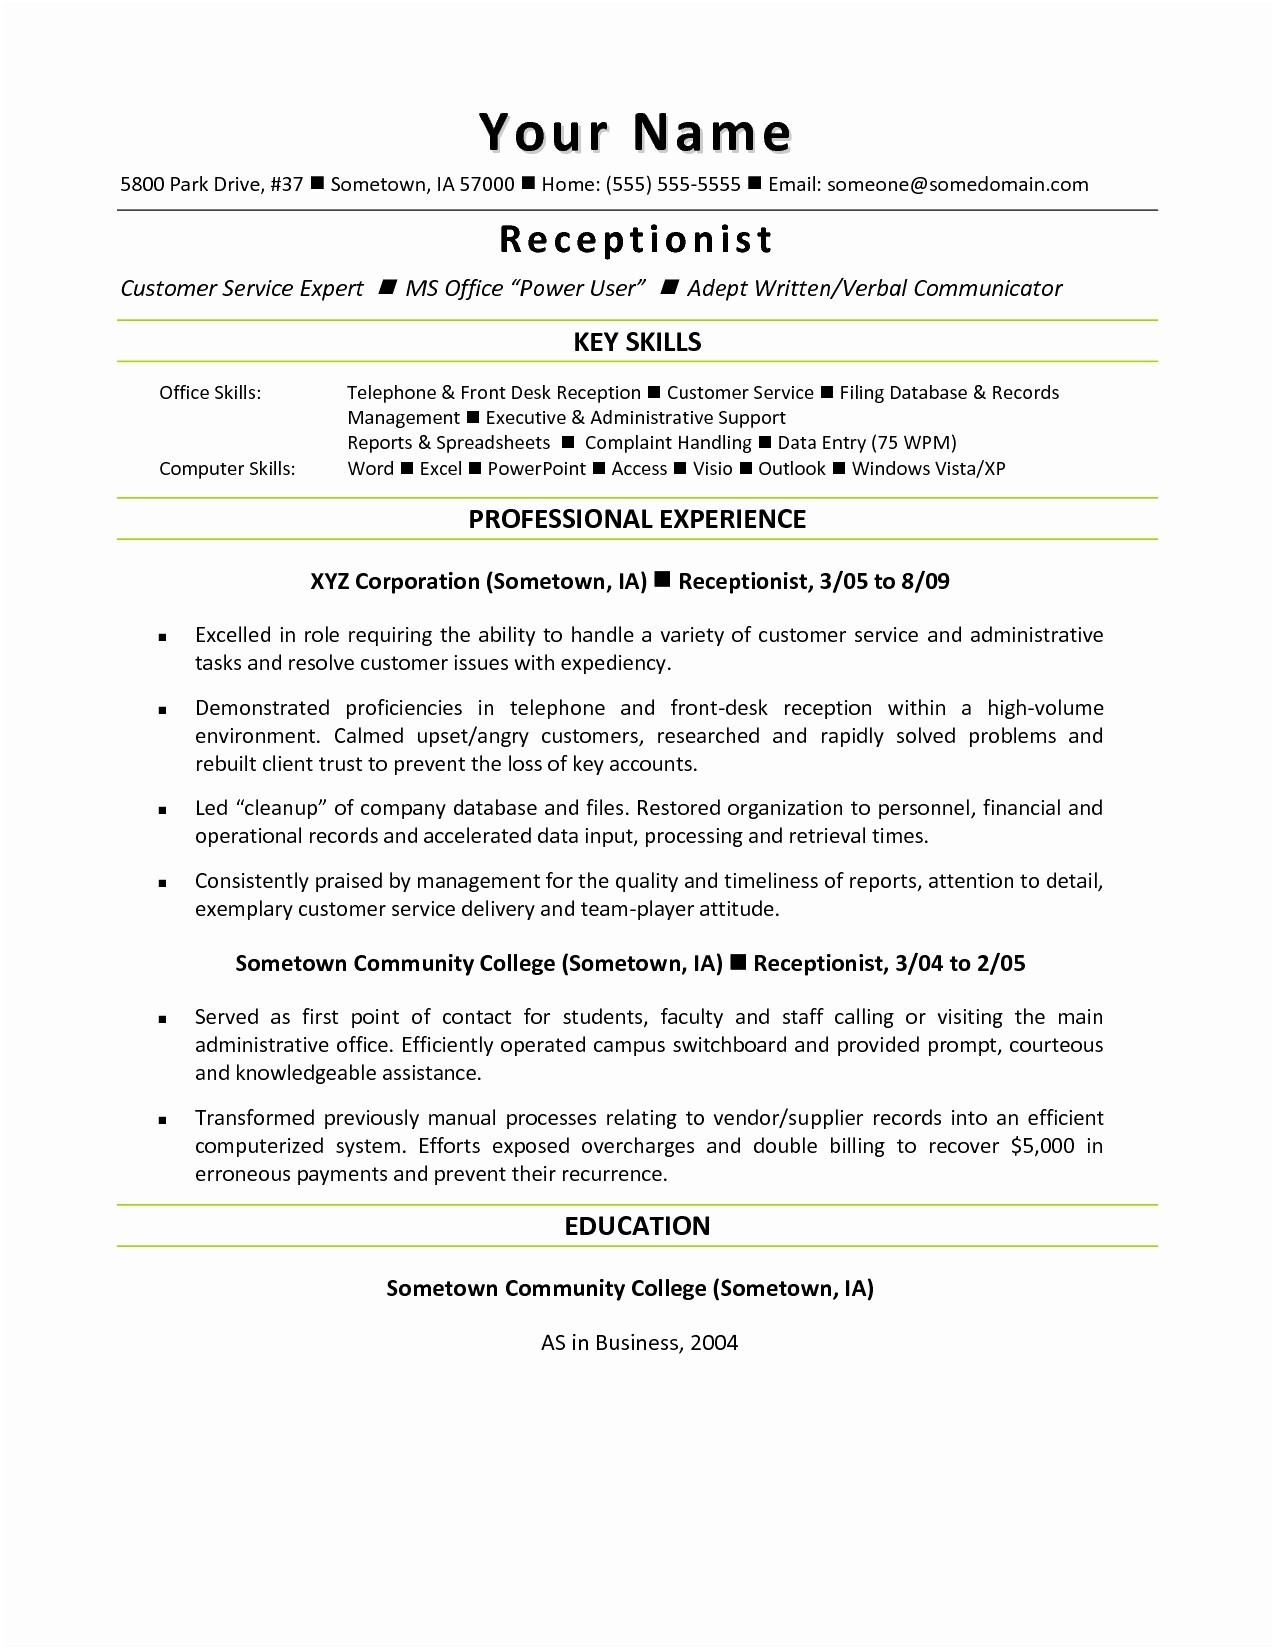 resume and cover letter template microsoft word Collection-Resume Microsoft Word Fresh Resume Mail Format Sample Fresh Beautiful Od Consultant Cover Letter Information 13-a